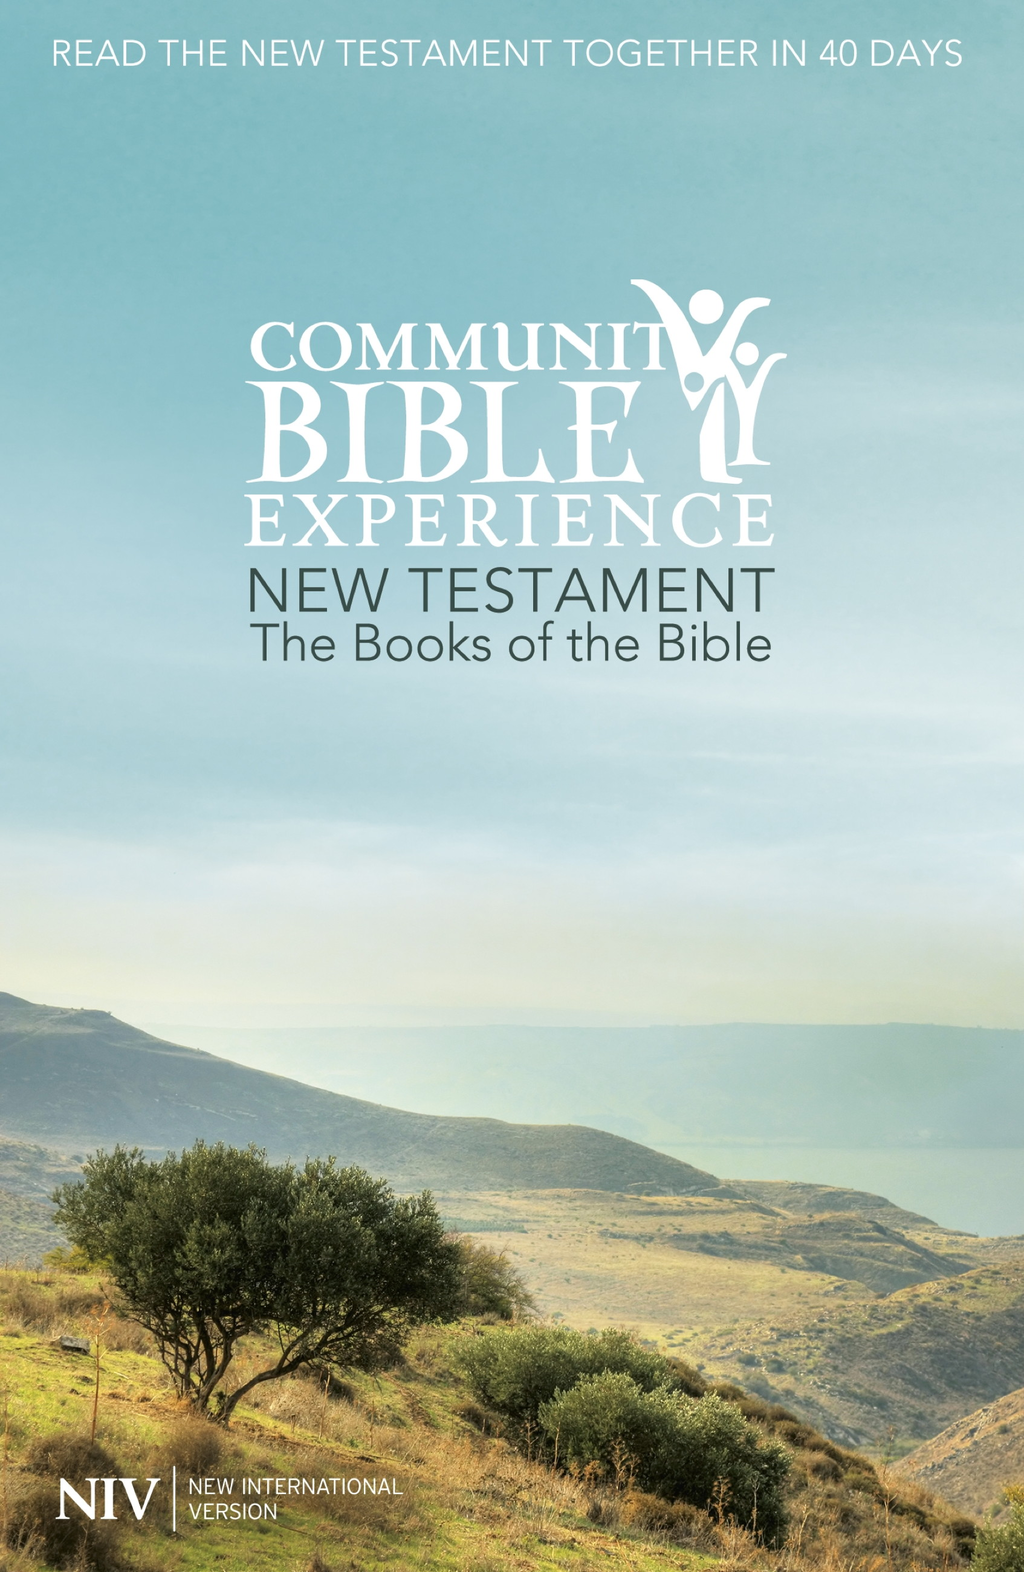 The Books of the Bible (NIV): New Testament Community Bible Experience